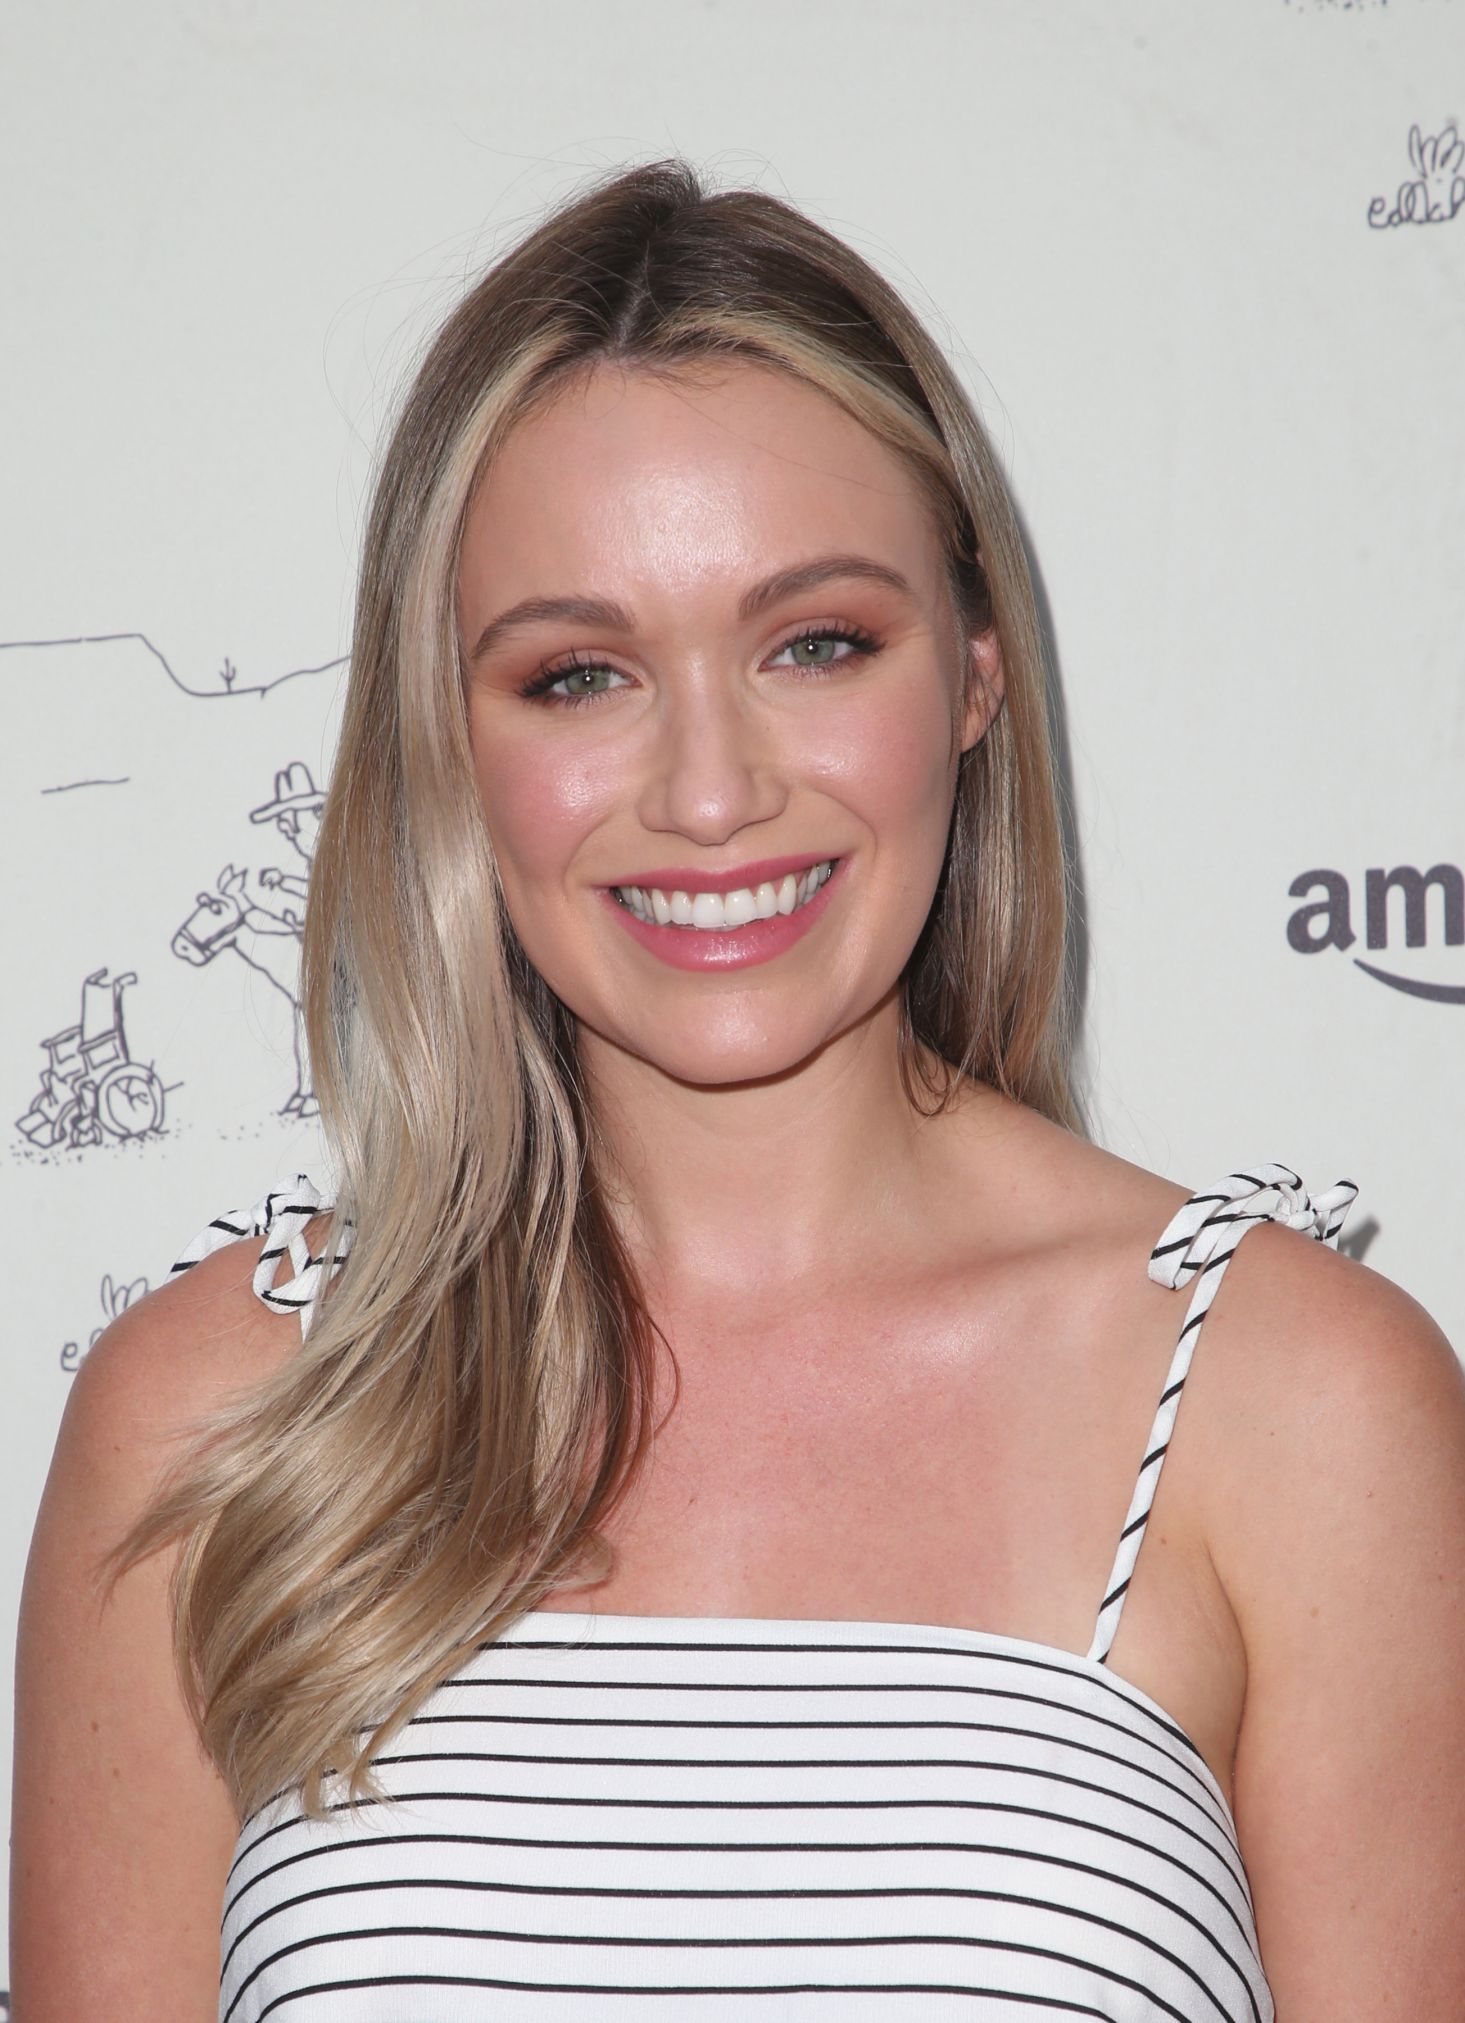 Celebrites Katrina Bowden nudes (44 photo), Topless, Is a cute, Instagram, butt 2017